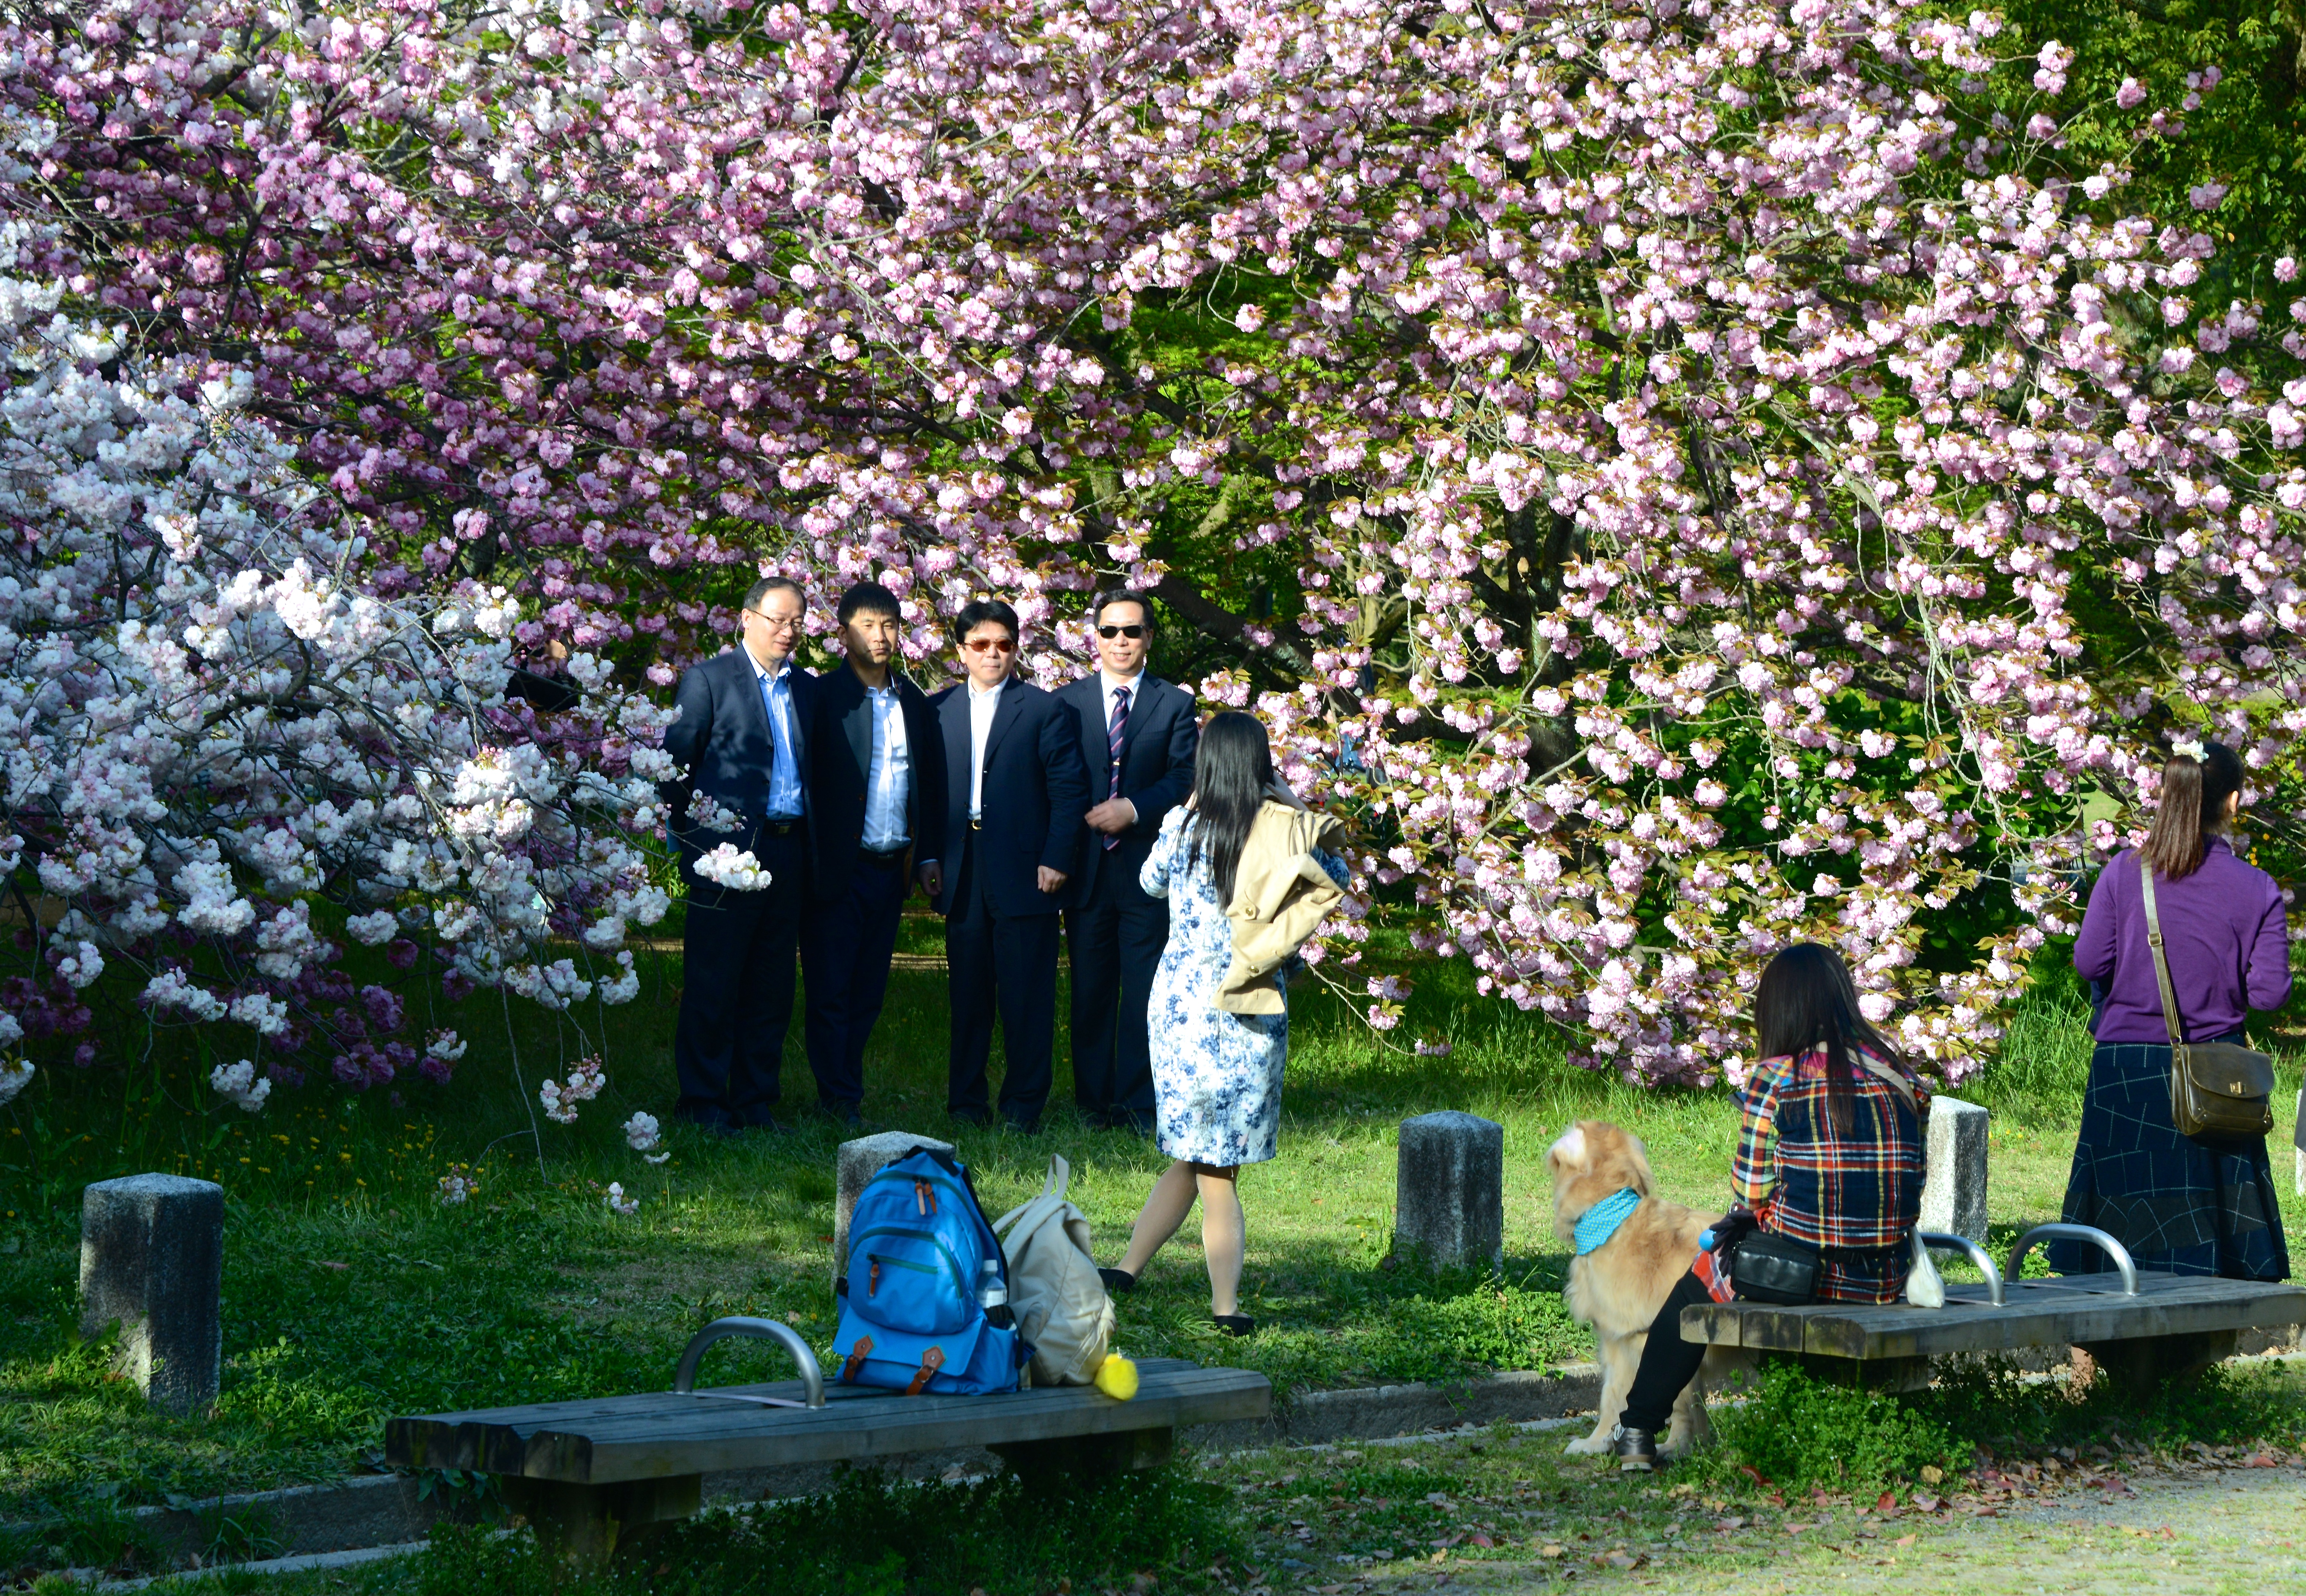 businessmen photographed in front of cherry blossoms